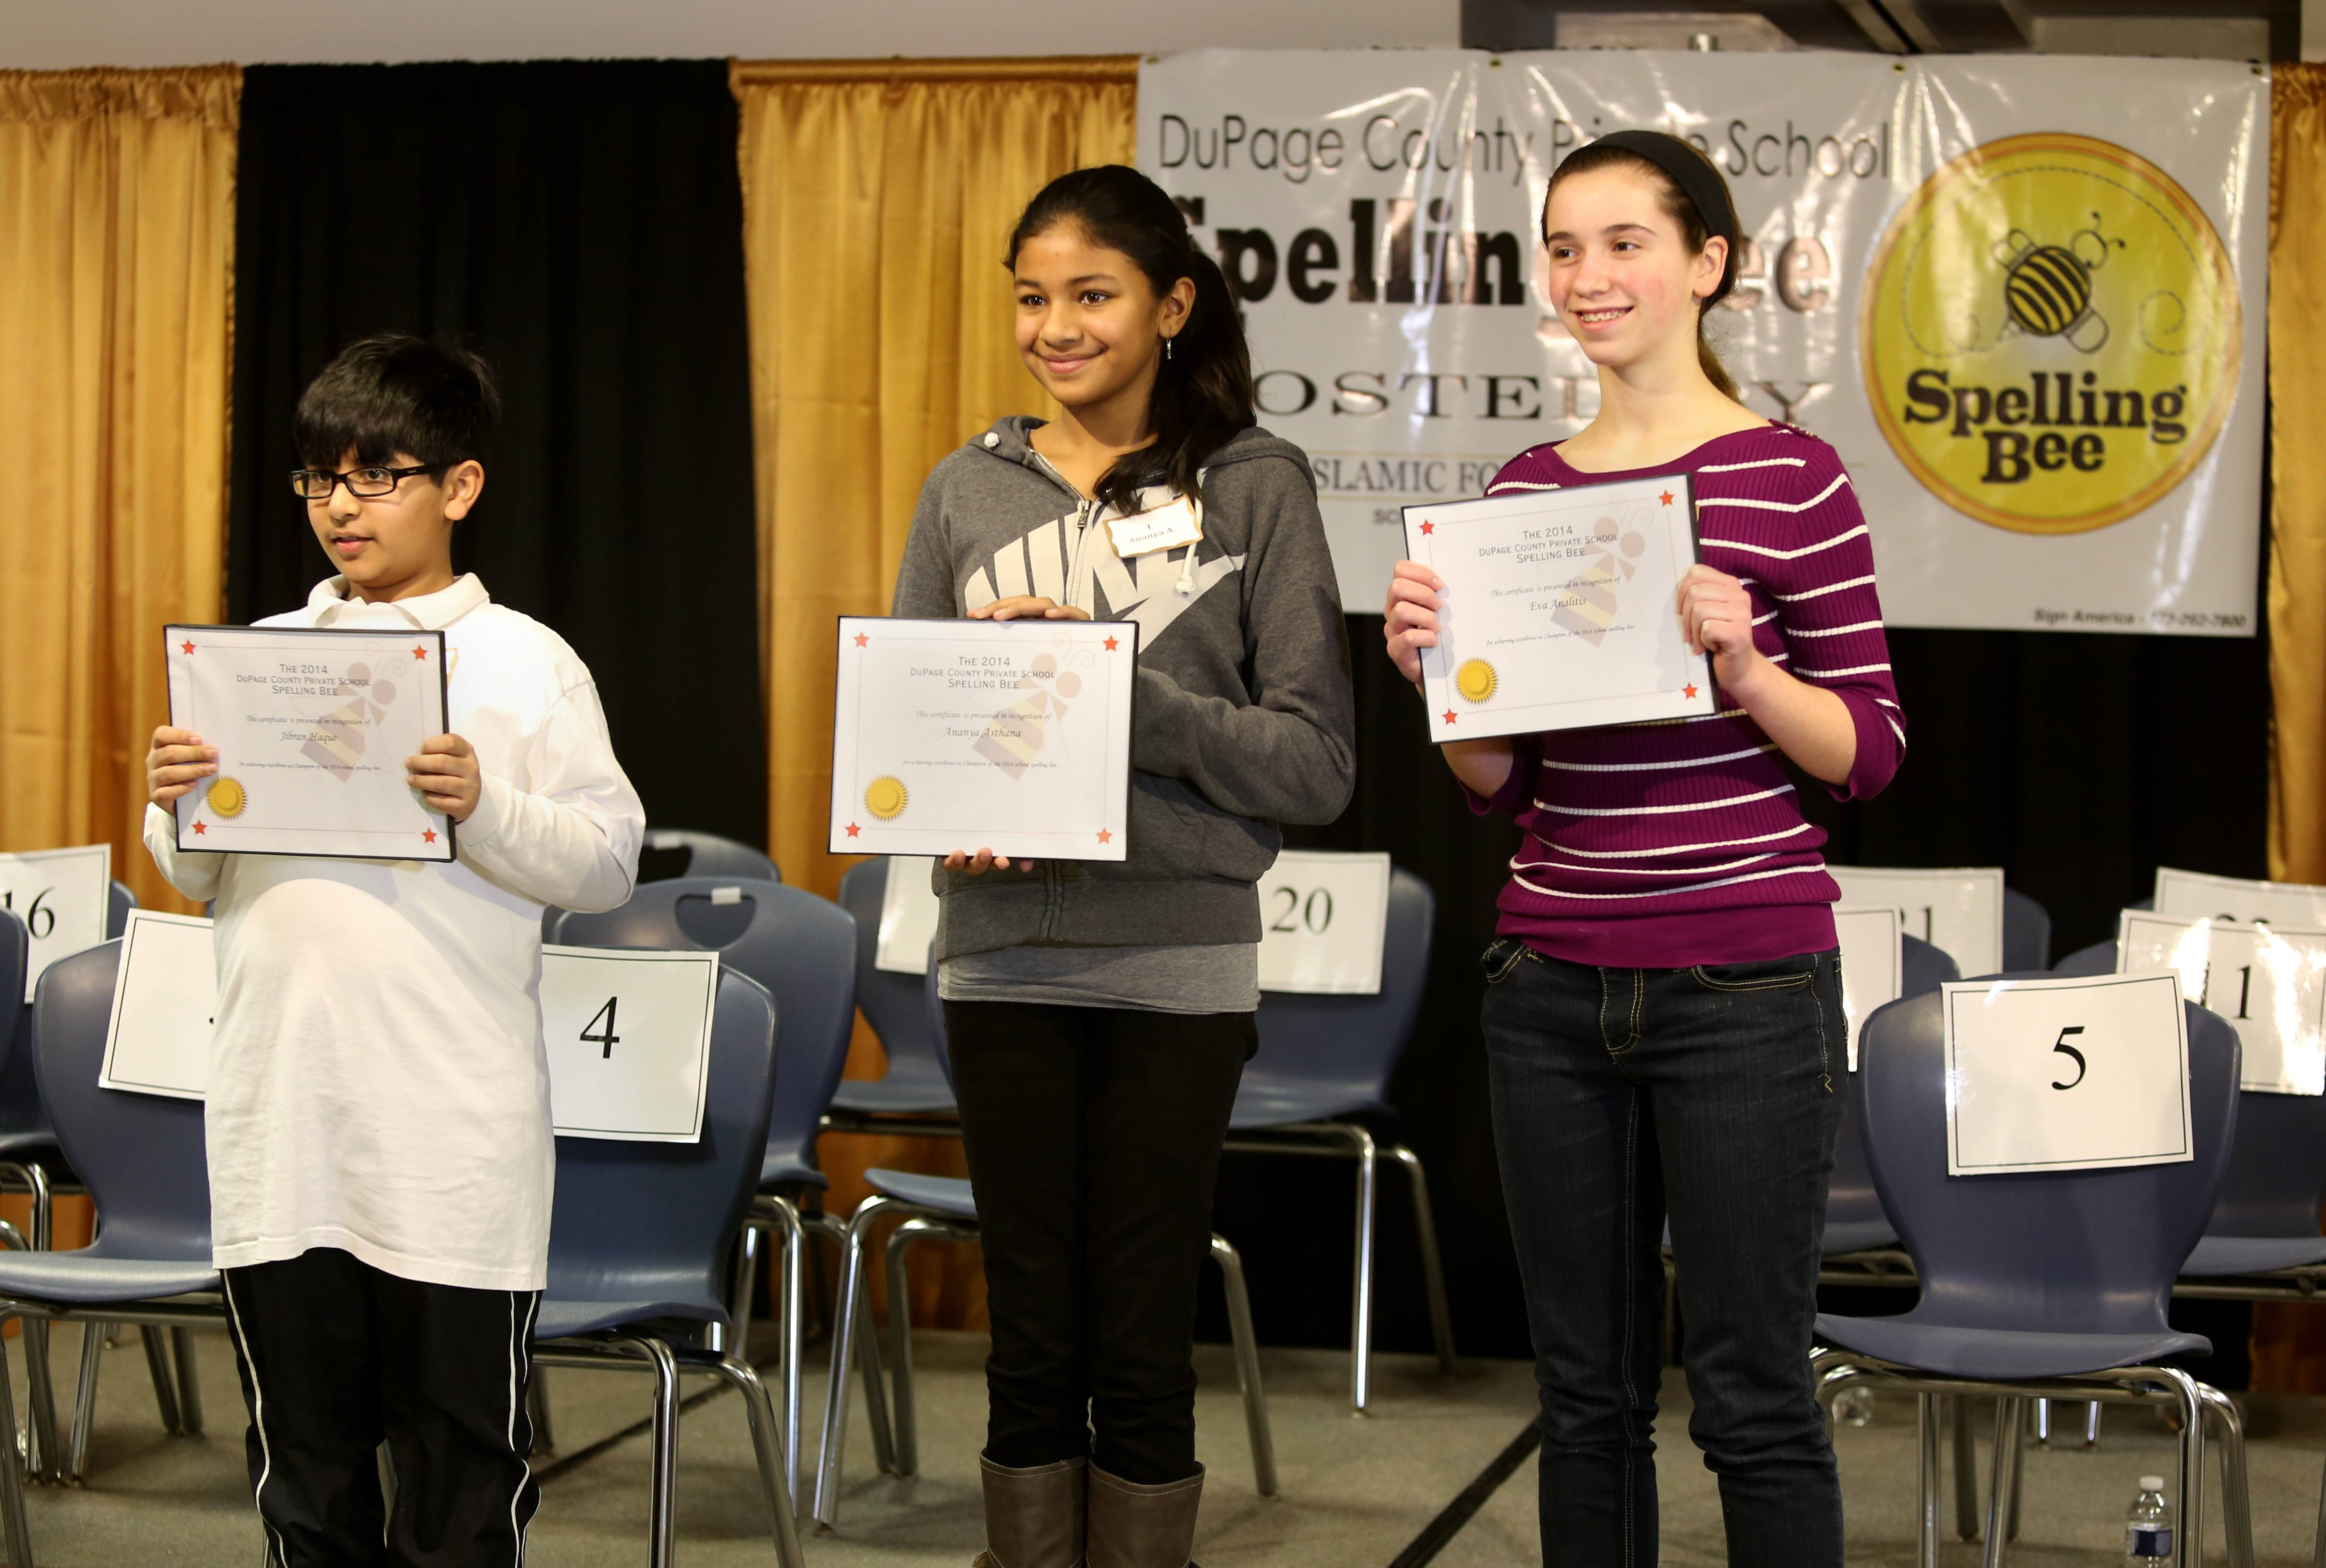 Jibran Haque from the College Preparatory School of America in Lombard, Ananya Asthana from Avery Coonley School in Downers Grove and Eva Analitis from St. Raphael Catholic School in Naperville each advanced to the next round of the Scripps National Spelling Bee with stellar performances on Wednesday.